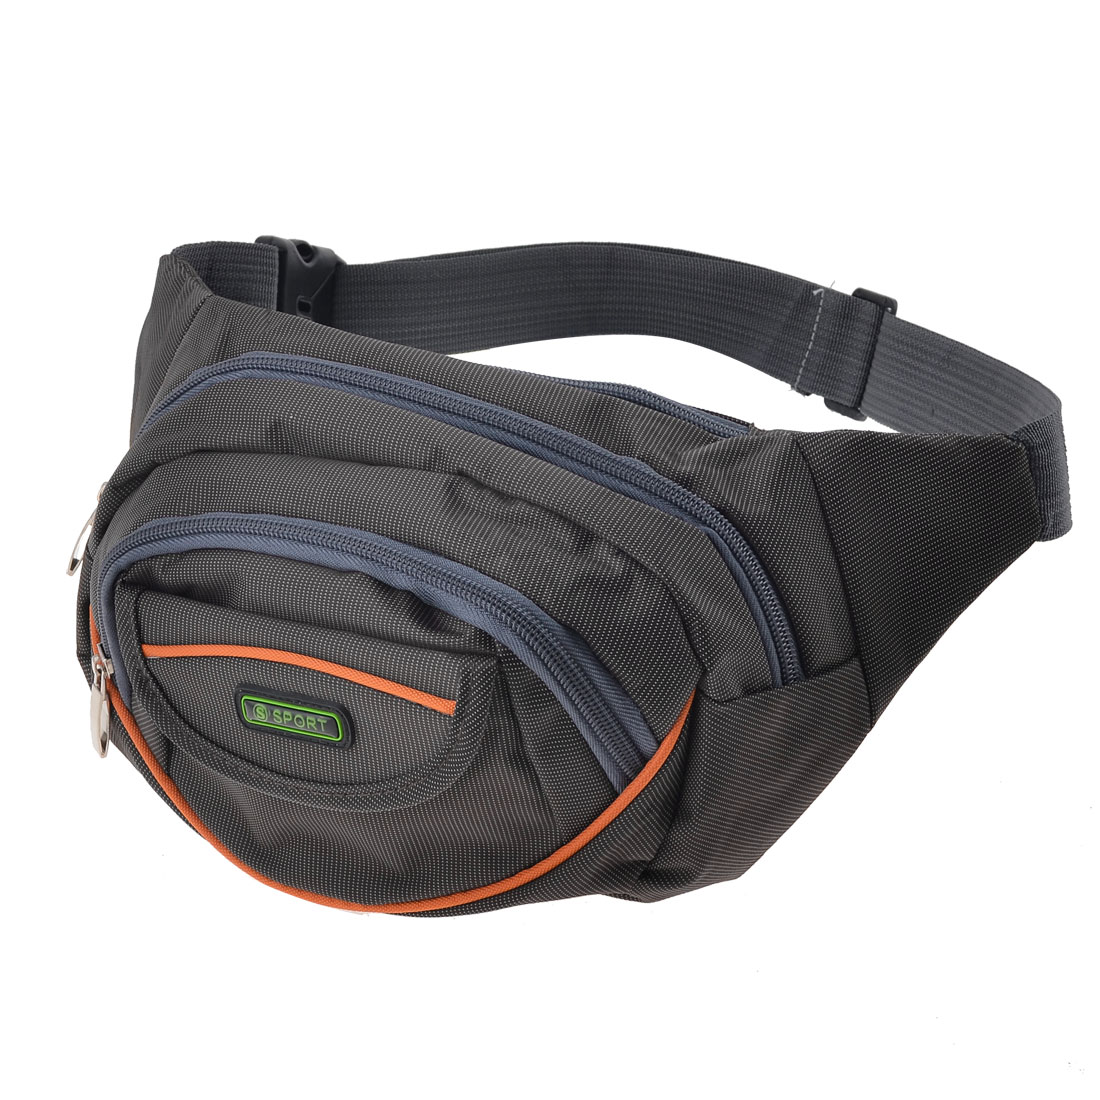 Unique Bargains Men's Hiking Portable Zip Up 4 Compartments Gray Nylon Leisure Waist Pack